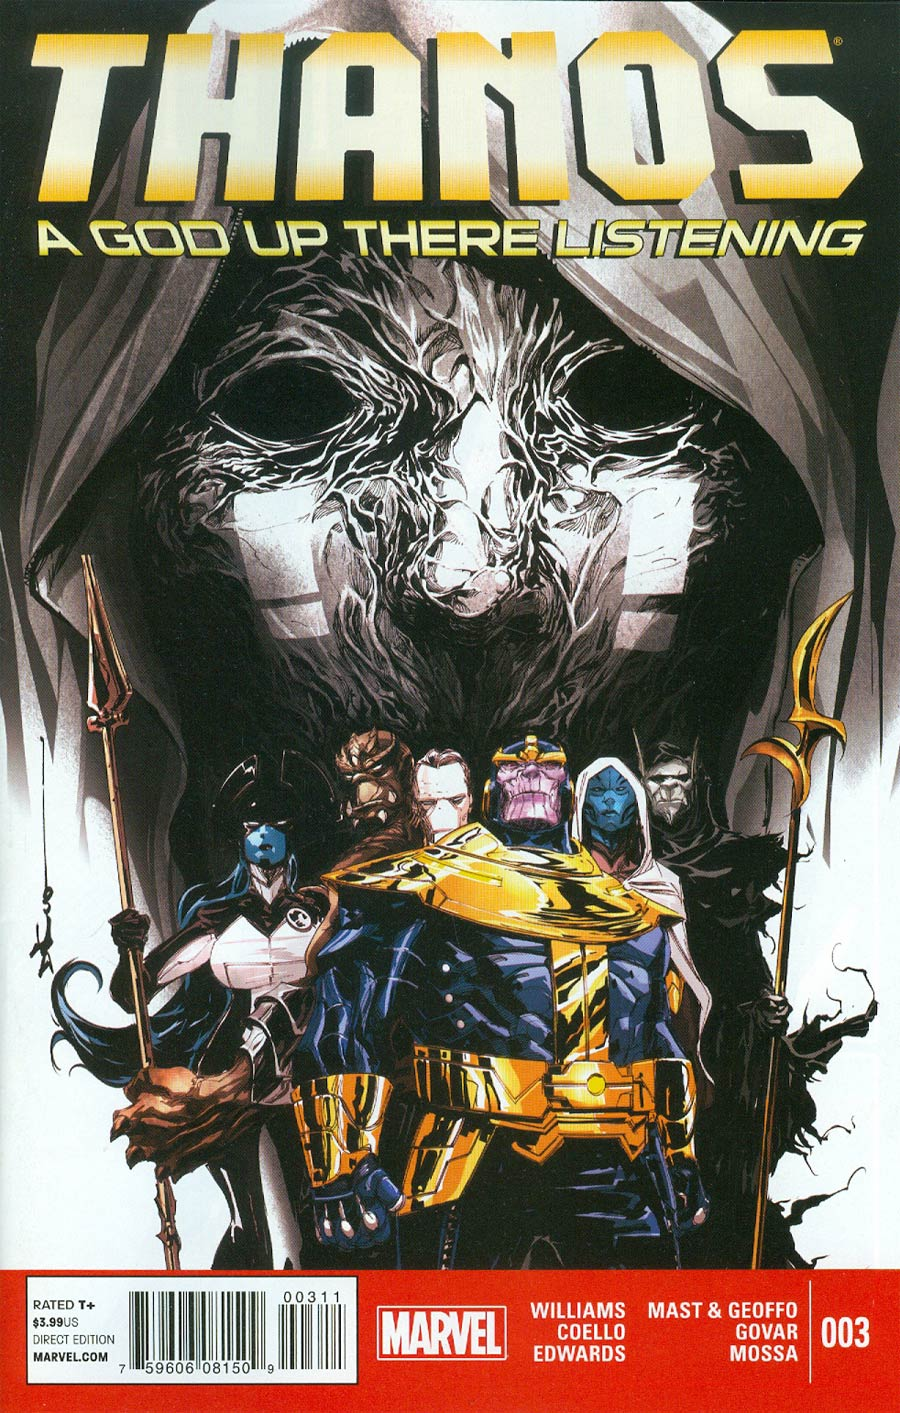 Thanos A God Up There Listening #3